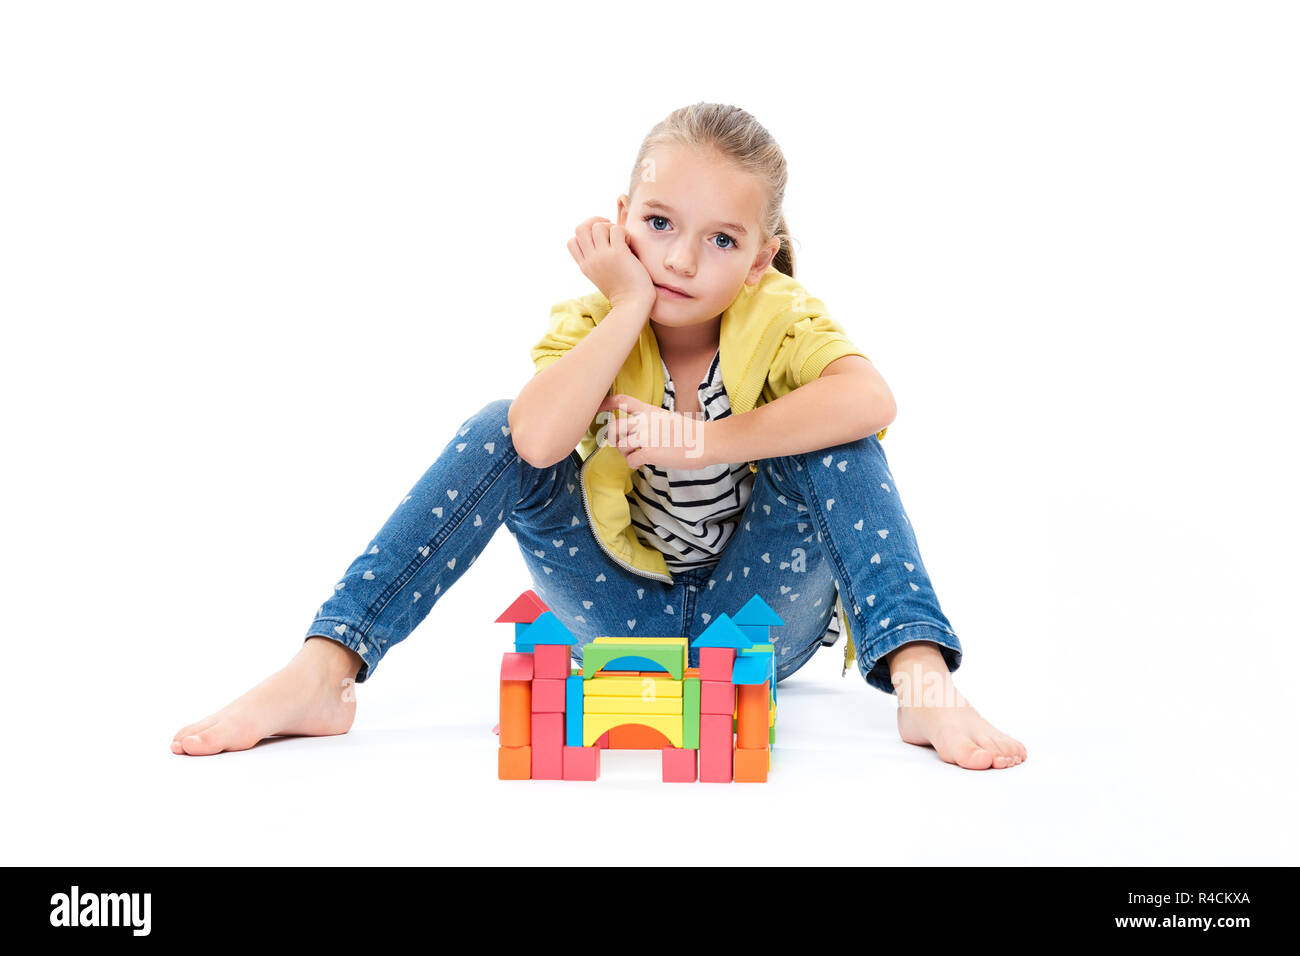 Young girl at behavior therapy, building a castle with wooden toy block. Child play therapy concept on white background. - Stock Image